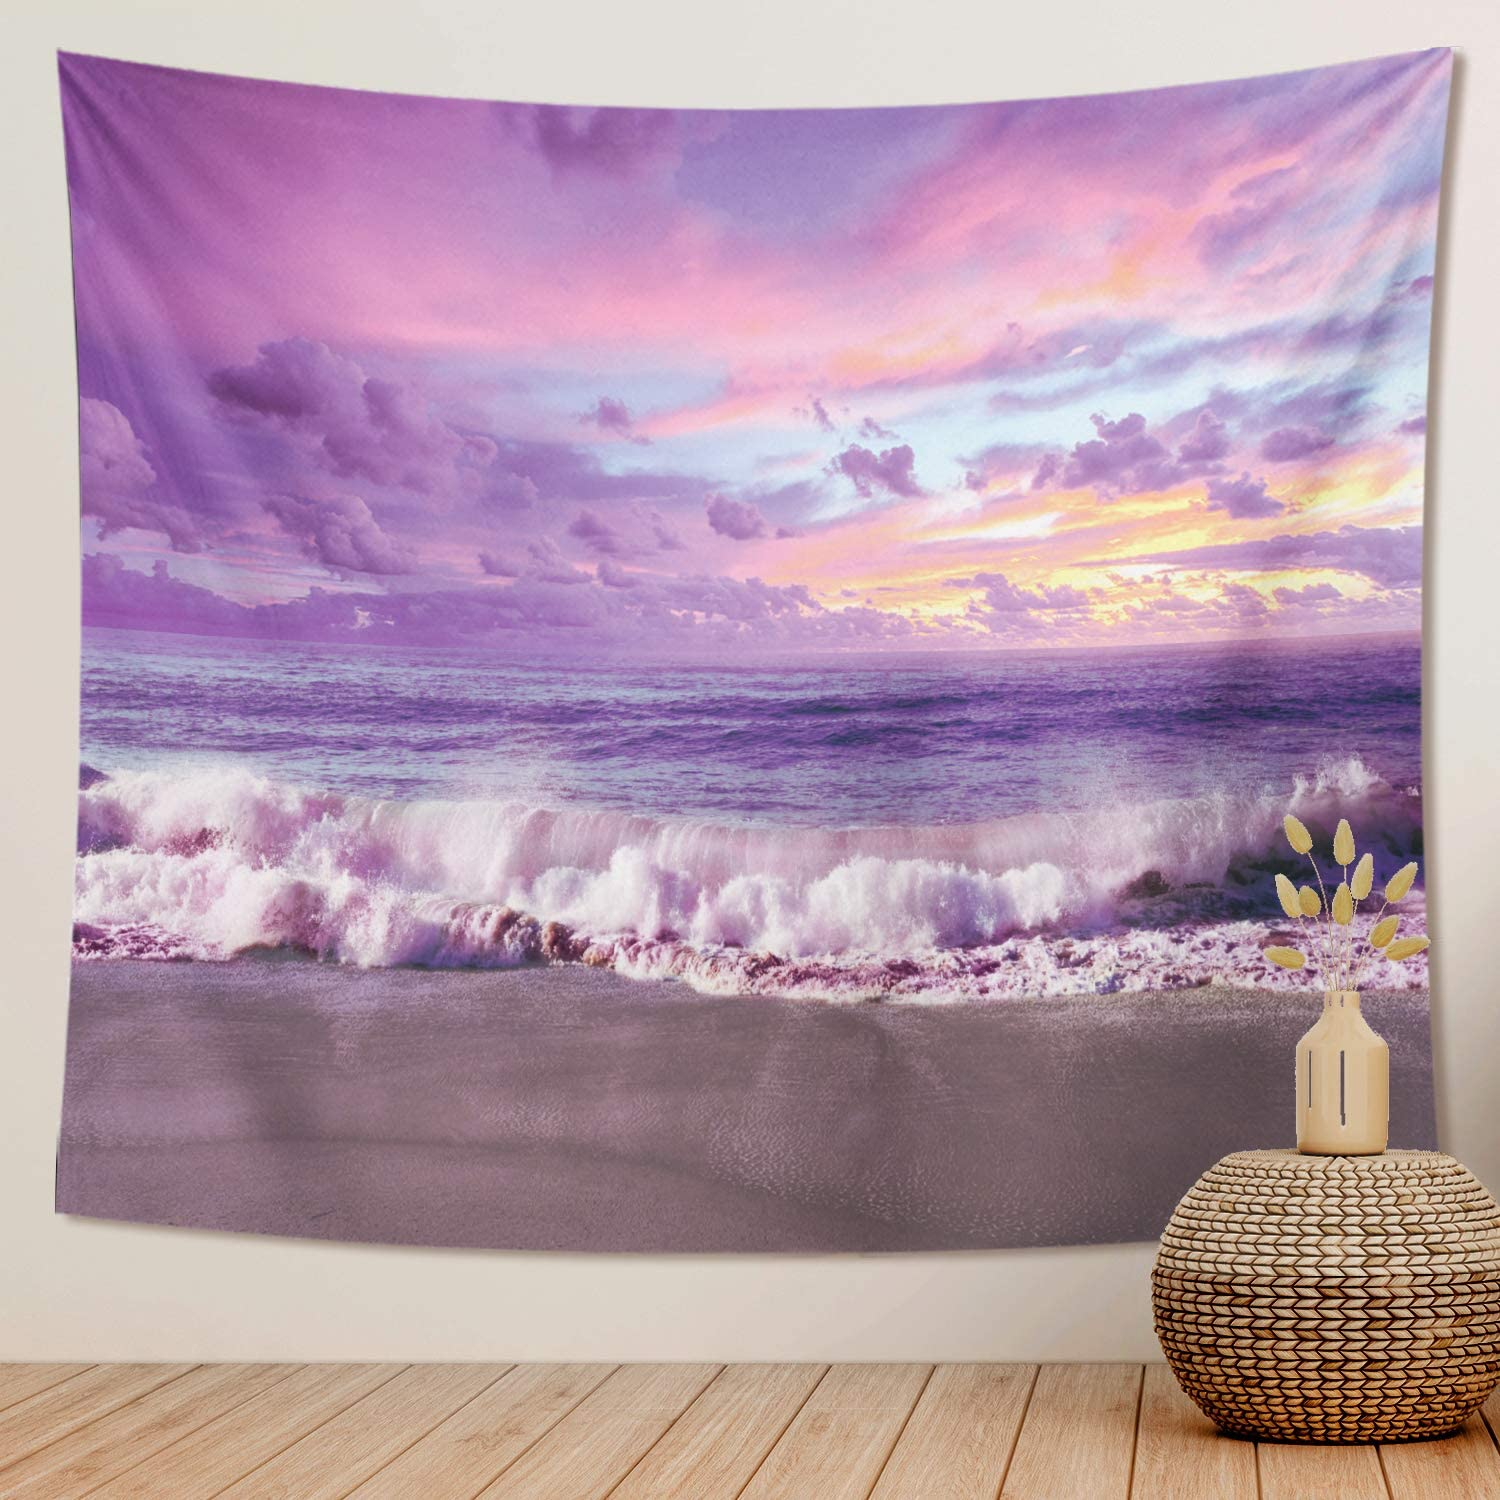 DESIHOM Purple Beach Tapestry Ocean Tapestry Landscape Tapestry Cloud Sunset Tapestry Scenery Hawaii Tapestry Nature Mens Tapestry Polyester for Bedroom Tapestry College Tapestry Living Room 59x51